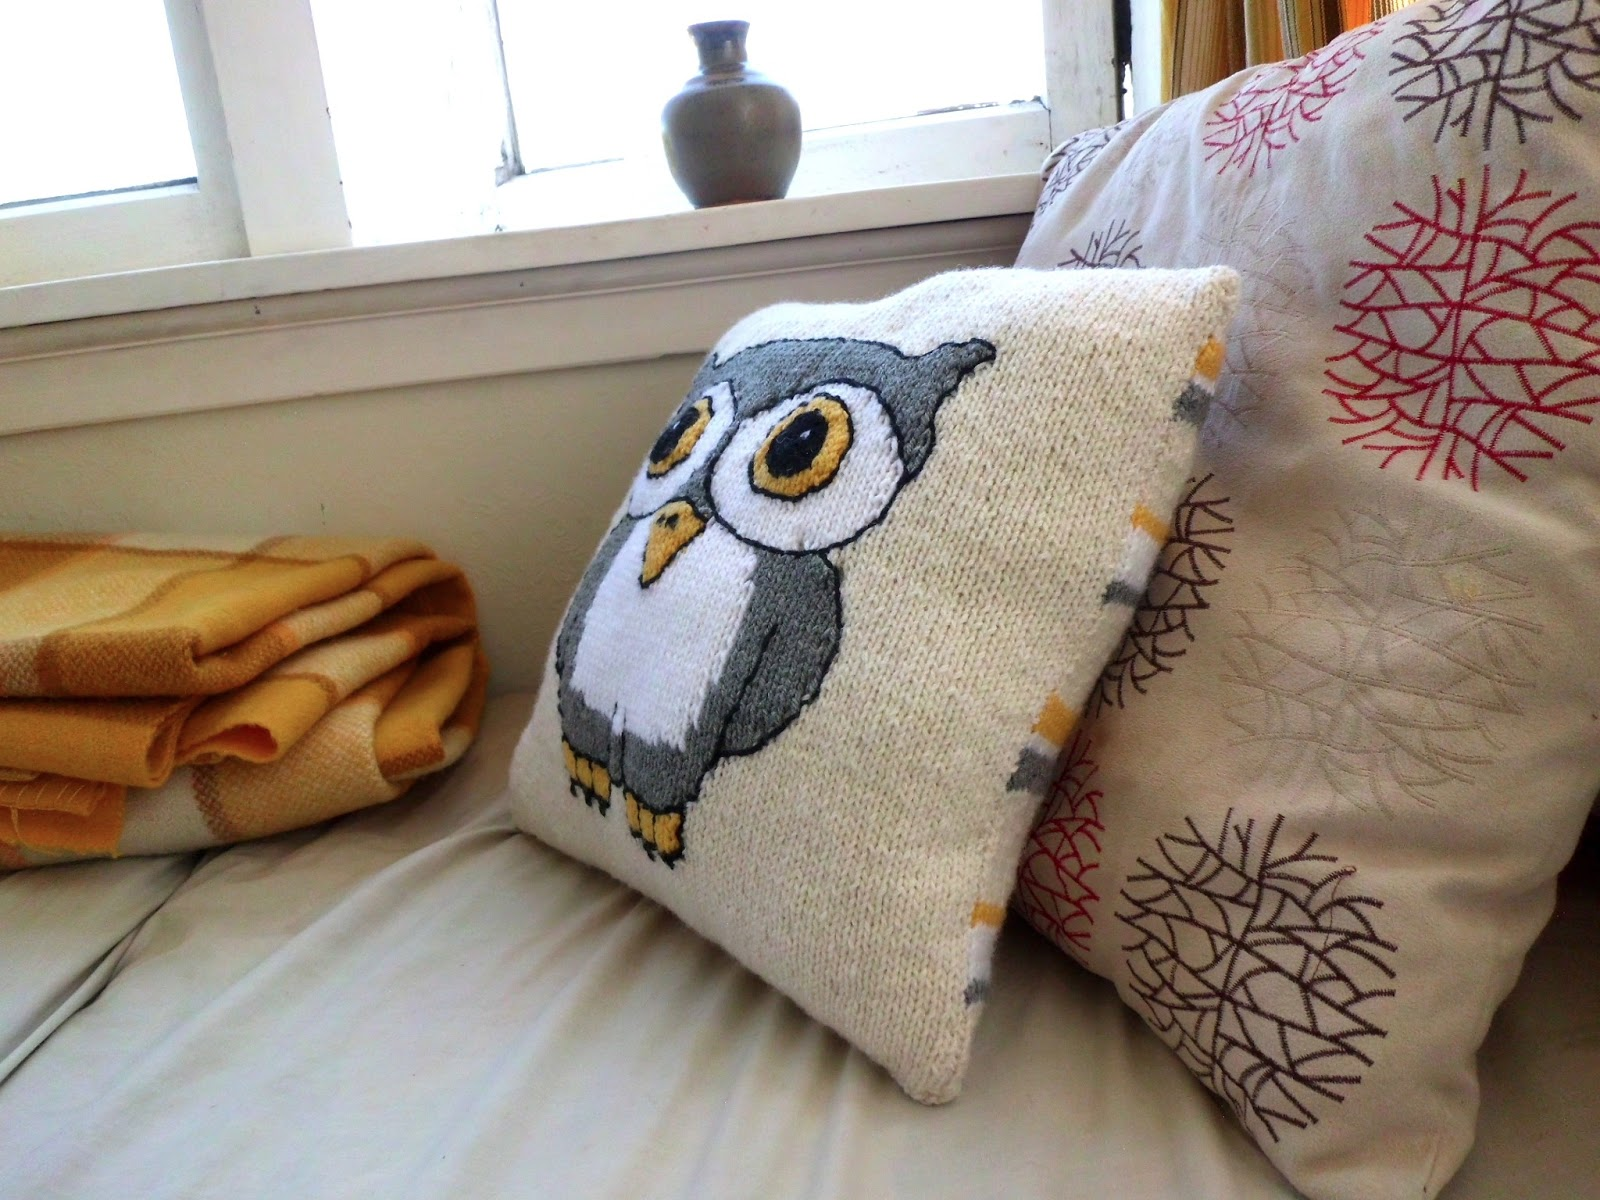 Shannons Crafts and other stuff: Knitted Owl Cushion Cover